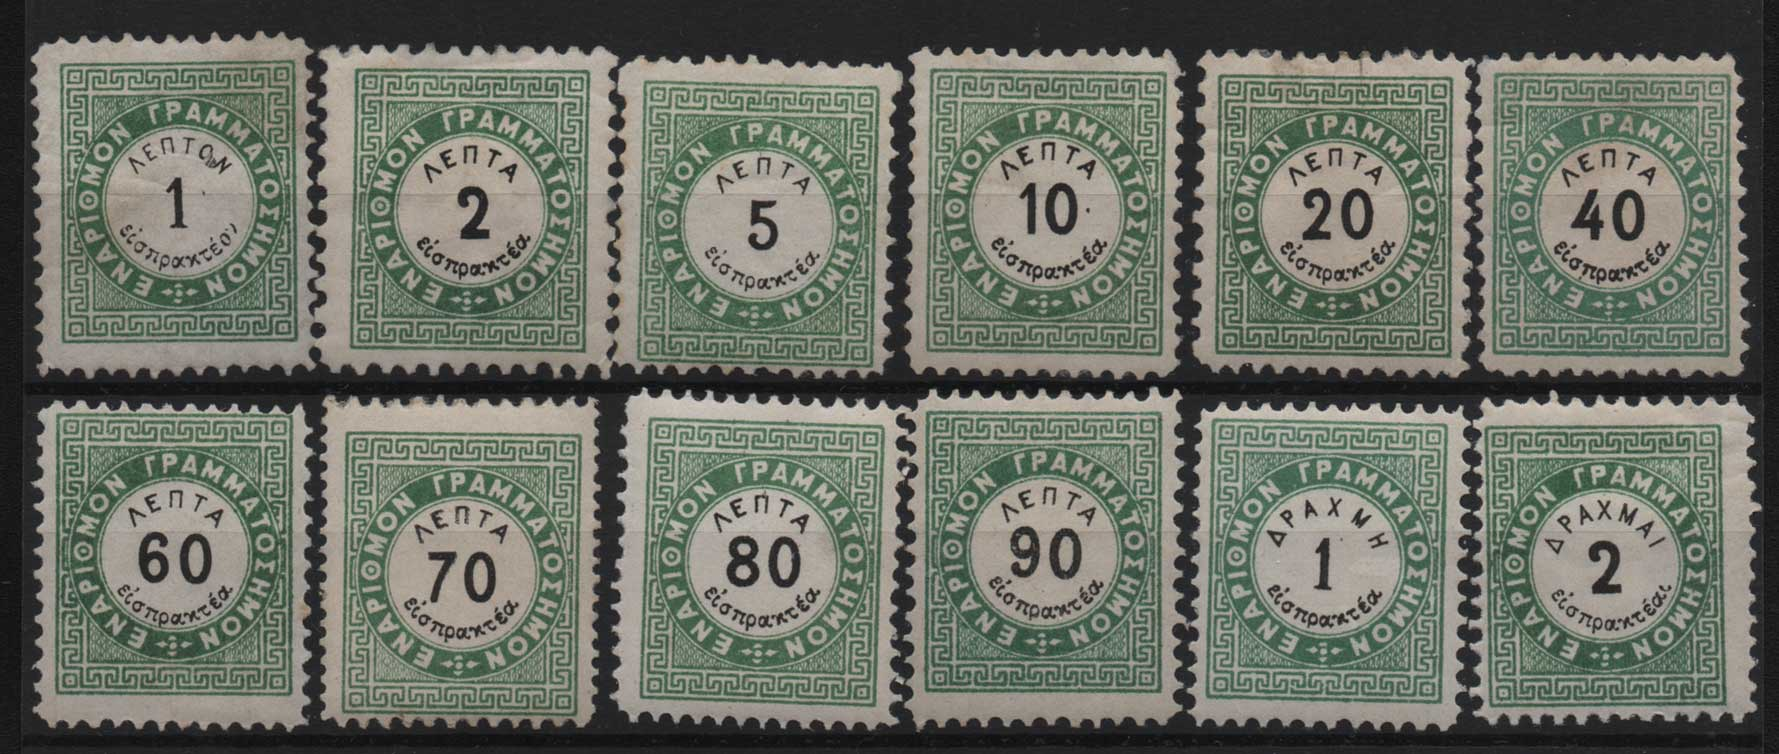 Lot 900 - -  POSTAGE DUE STAMPS Postage due stamps -  Athens Auctions Public Auction 90 General Stamp Sale